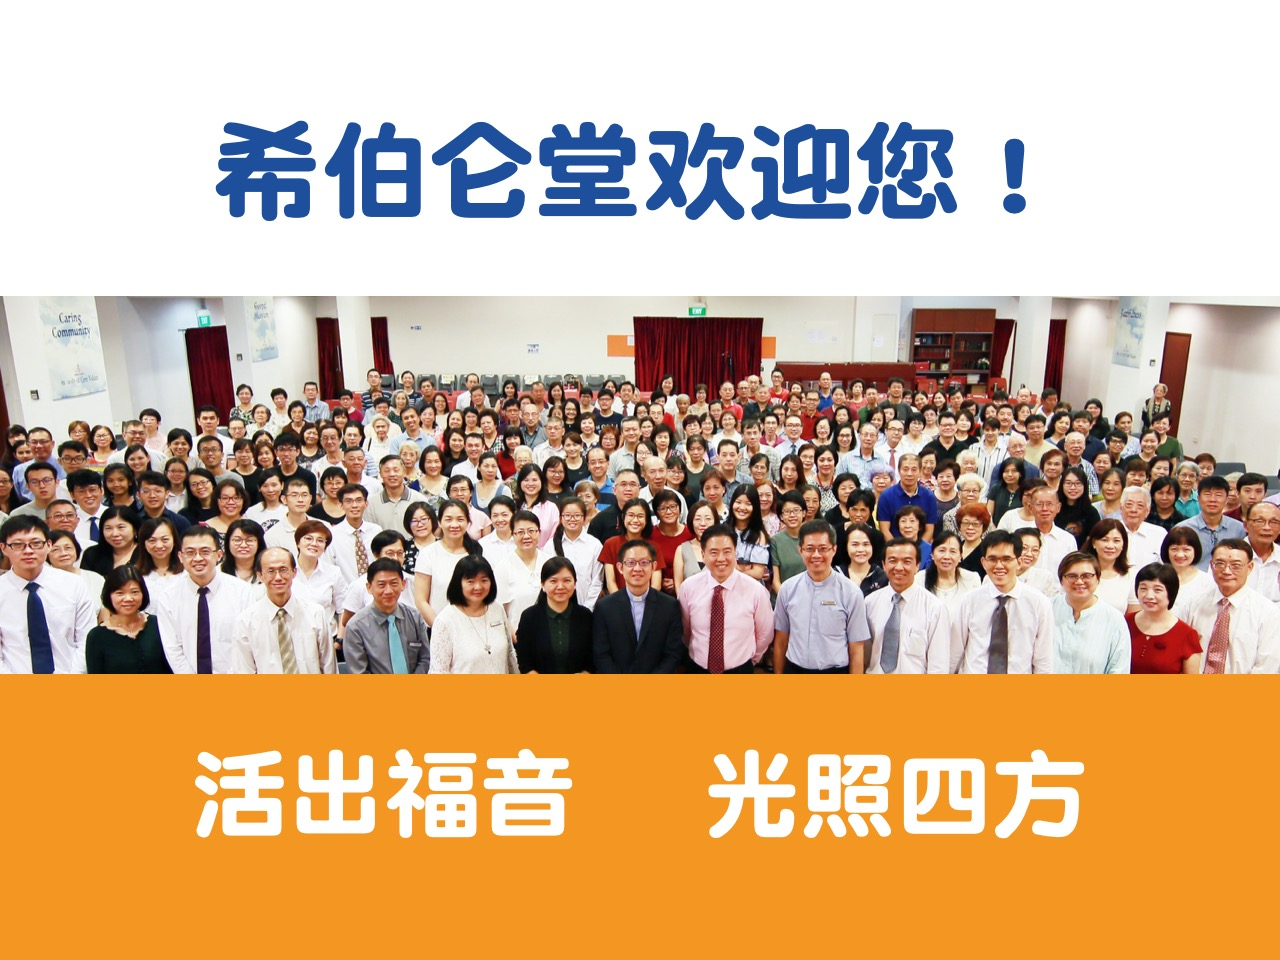 The Mandarin congregation of Hebron Bible-Presbyterian Church welcomes you!